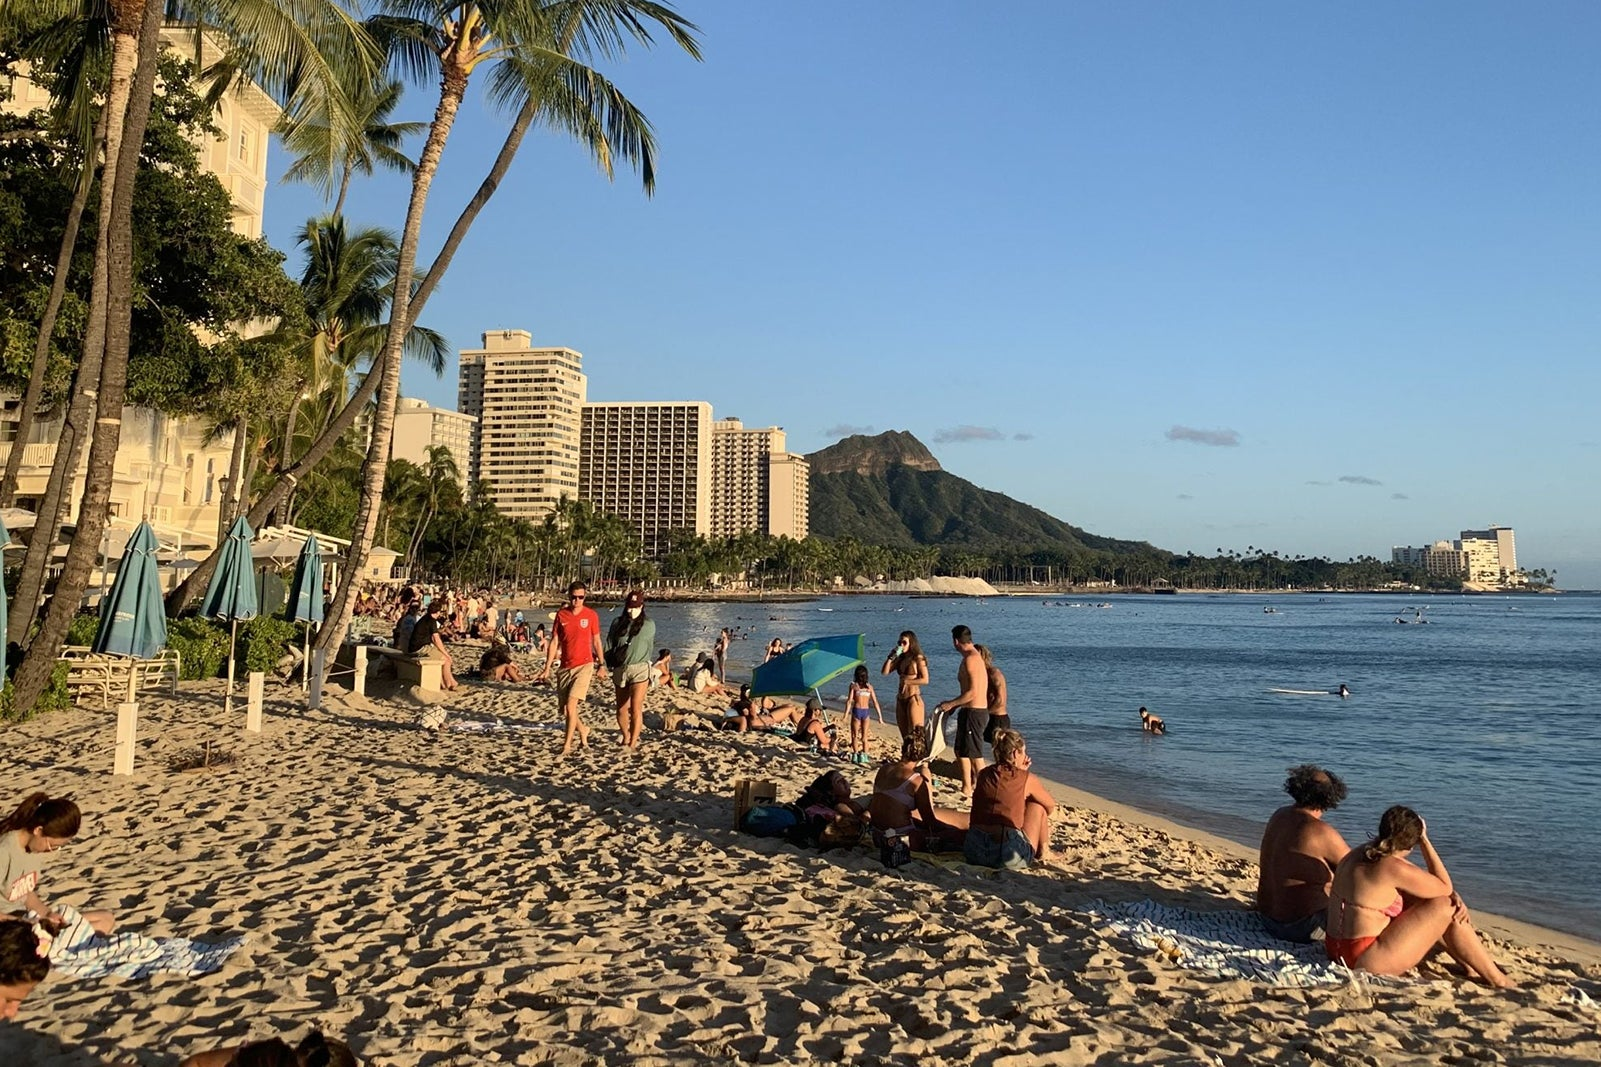 Fair warning, Hawaii is packed again with tourists